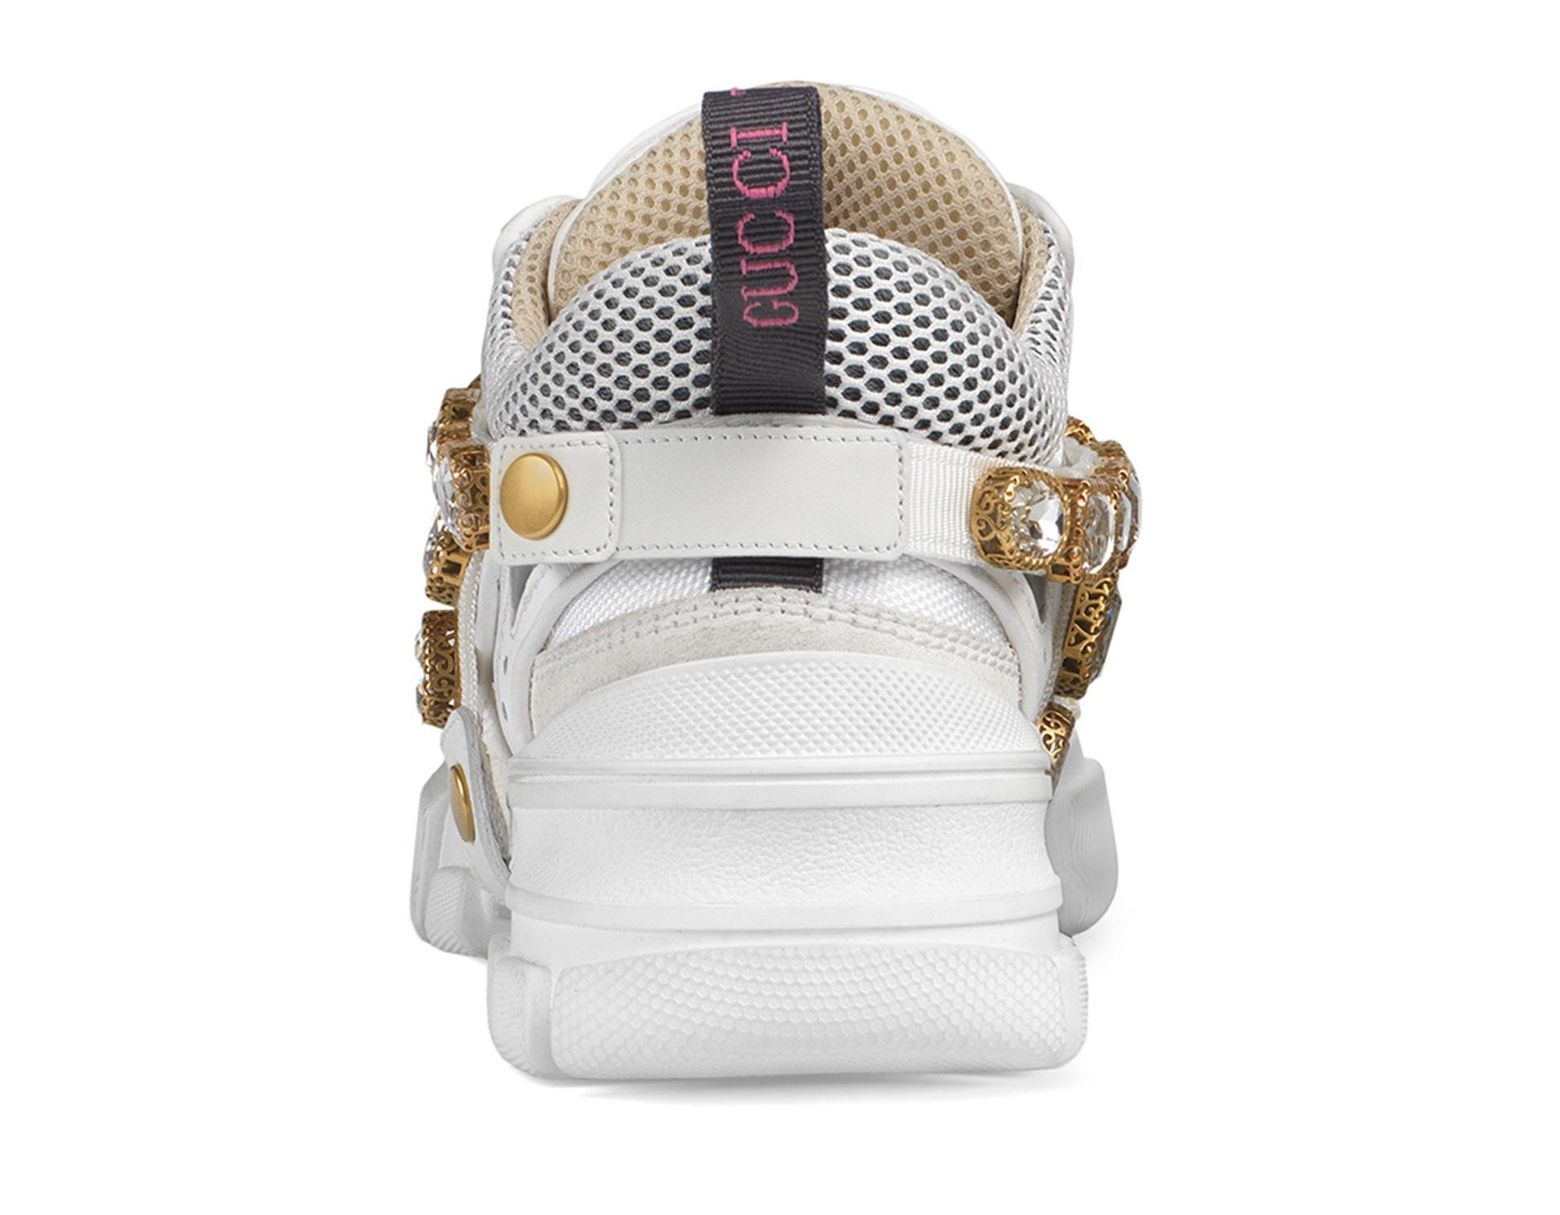 7287b77cb57ce Lyst - Gucci Flashtrek Sneakers With Removable Crystals in White - Save 40%